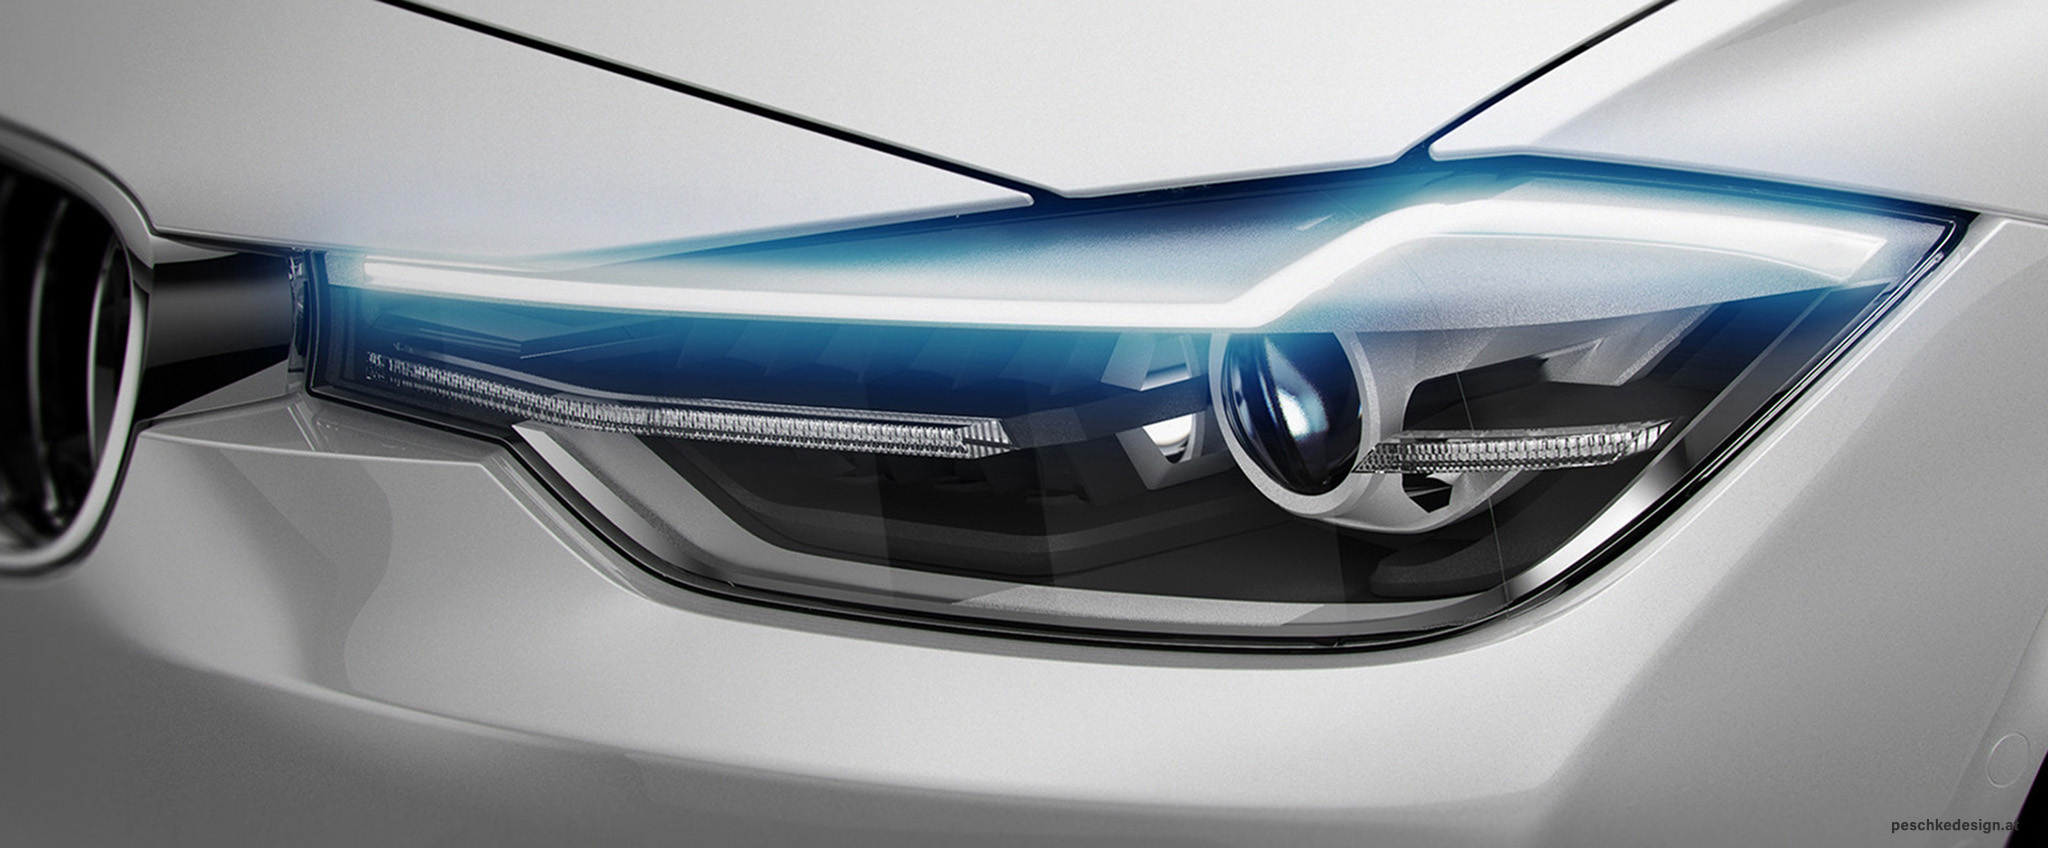 Productdesign for zkw headlight technology demonstrator.